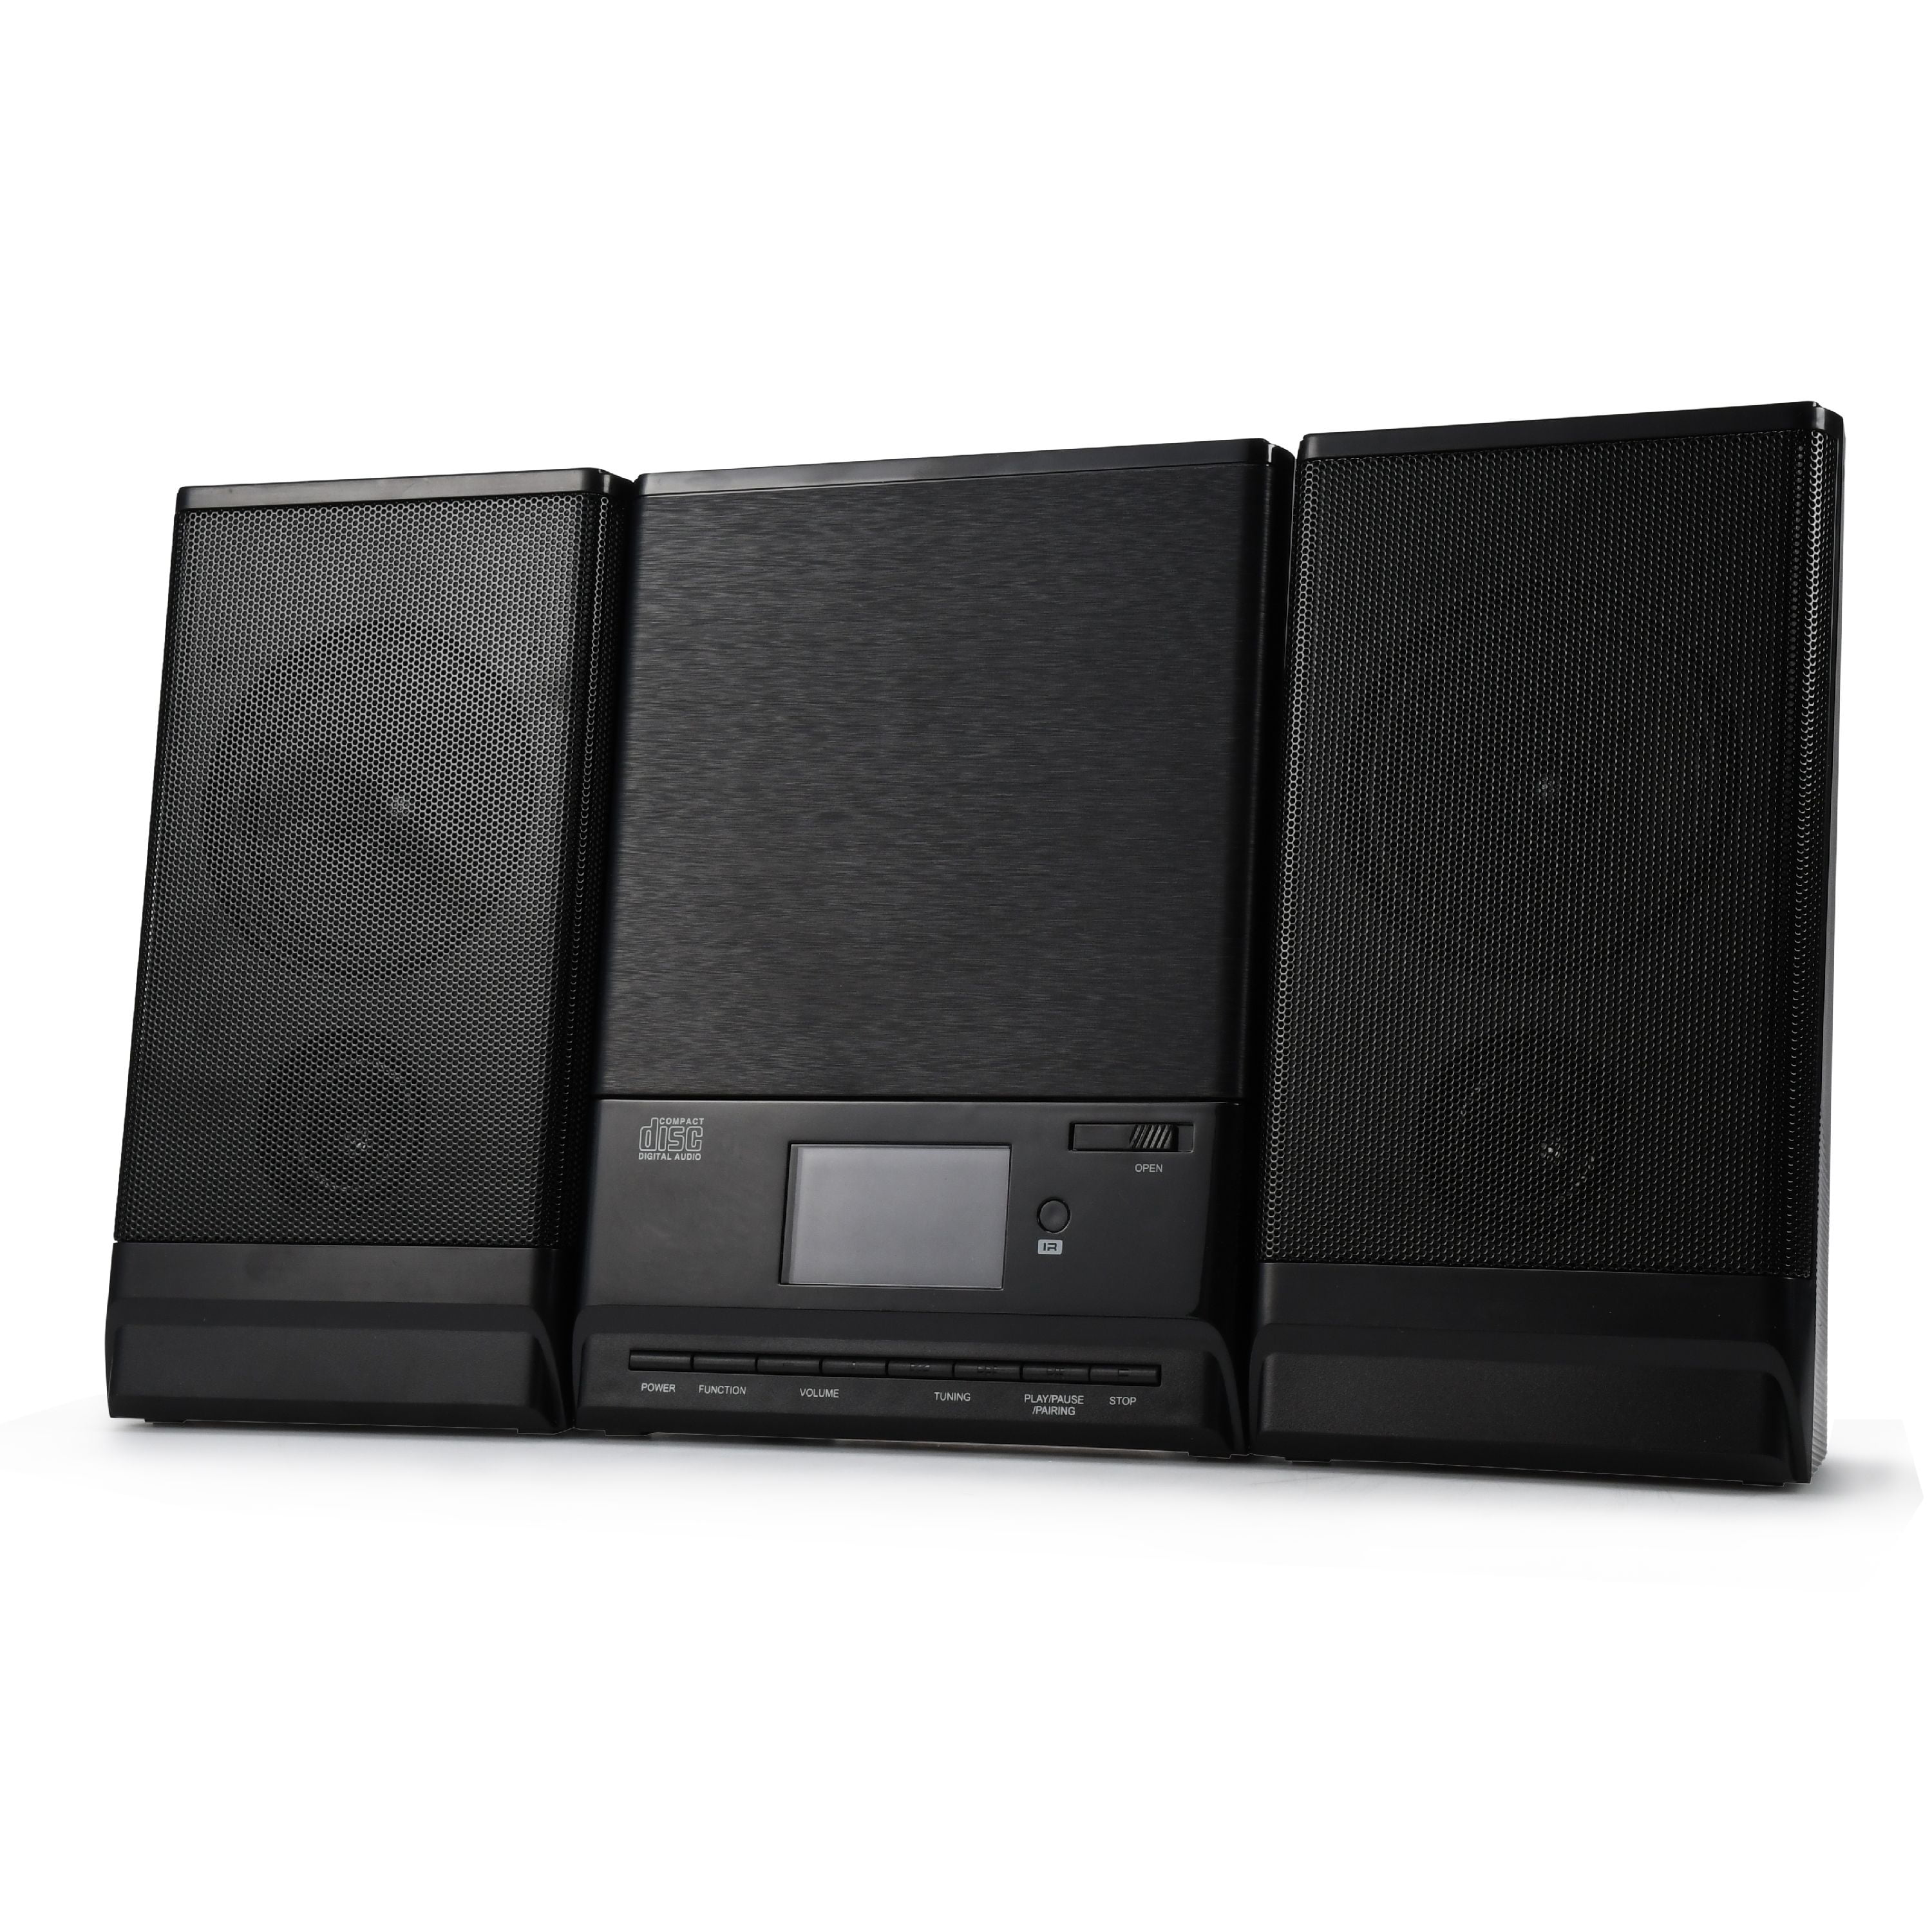 Onn Mini CD Stereo System with Bluetooth, FM Radio and Remote